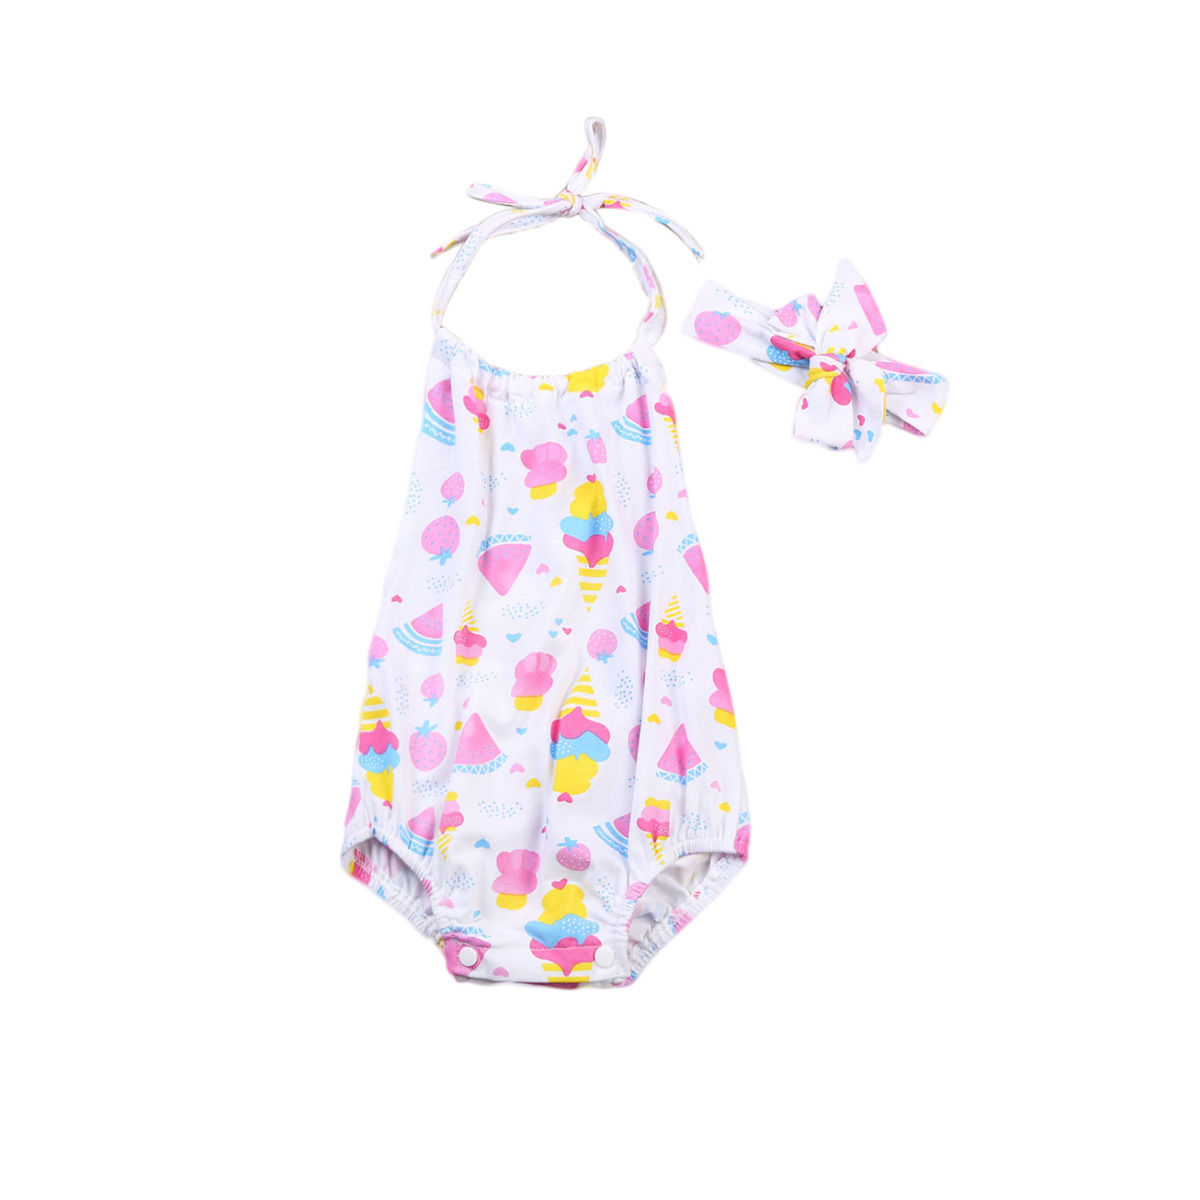 Newborn Toddler Infant Baby Girl Ice Cream Bodysuit Jumpsuit Sleeveless Sunsuit Outfit Clothes 0-24M